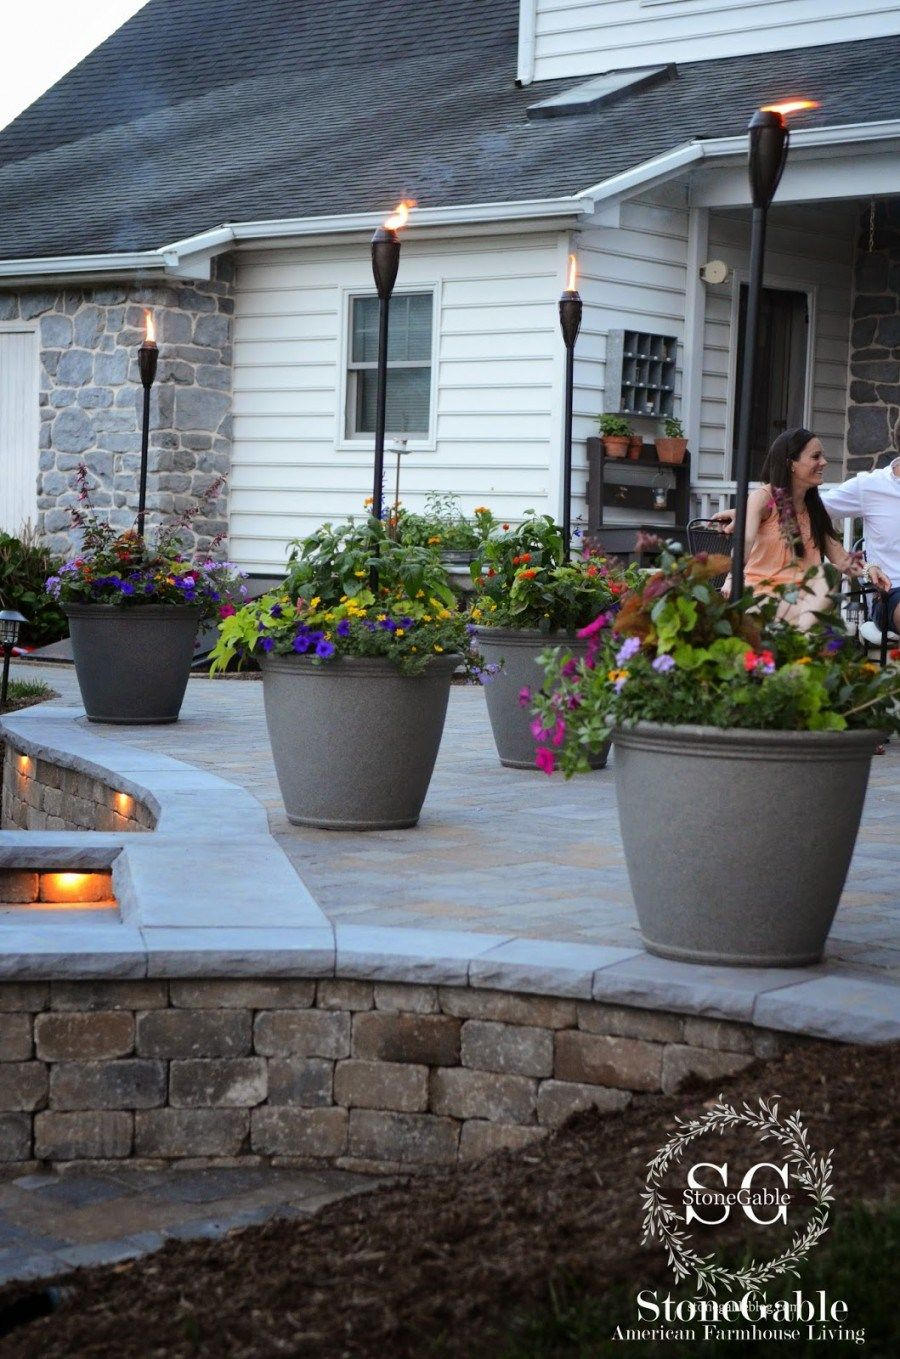 Genial 8 WAYS TO PERK UP YOUR PORCH AND PATIO THIS SPRING   StoneGable